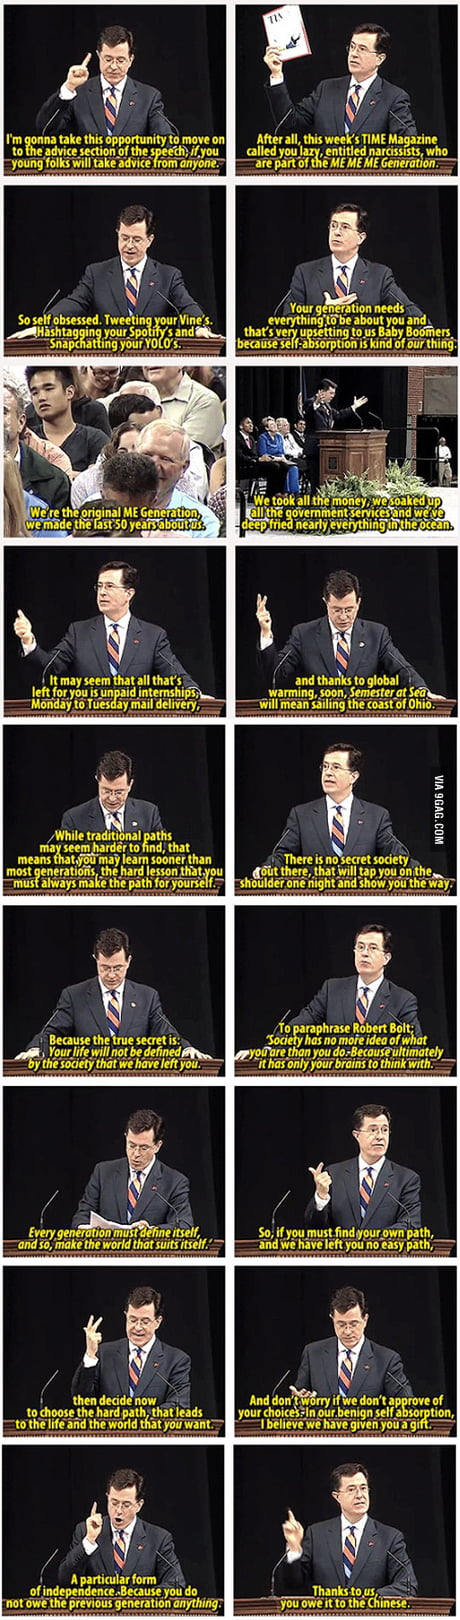 Stephen Colbert gets real